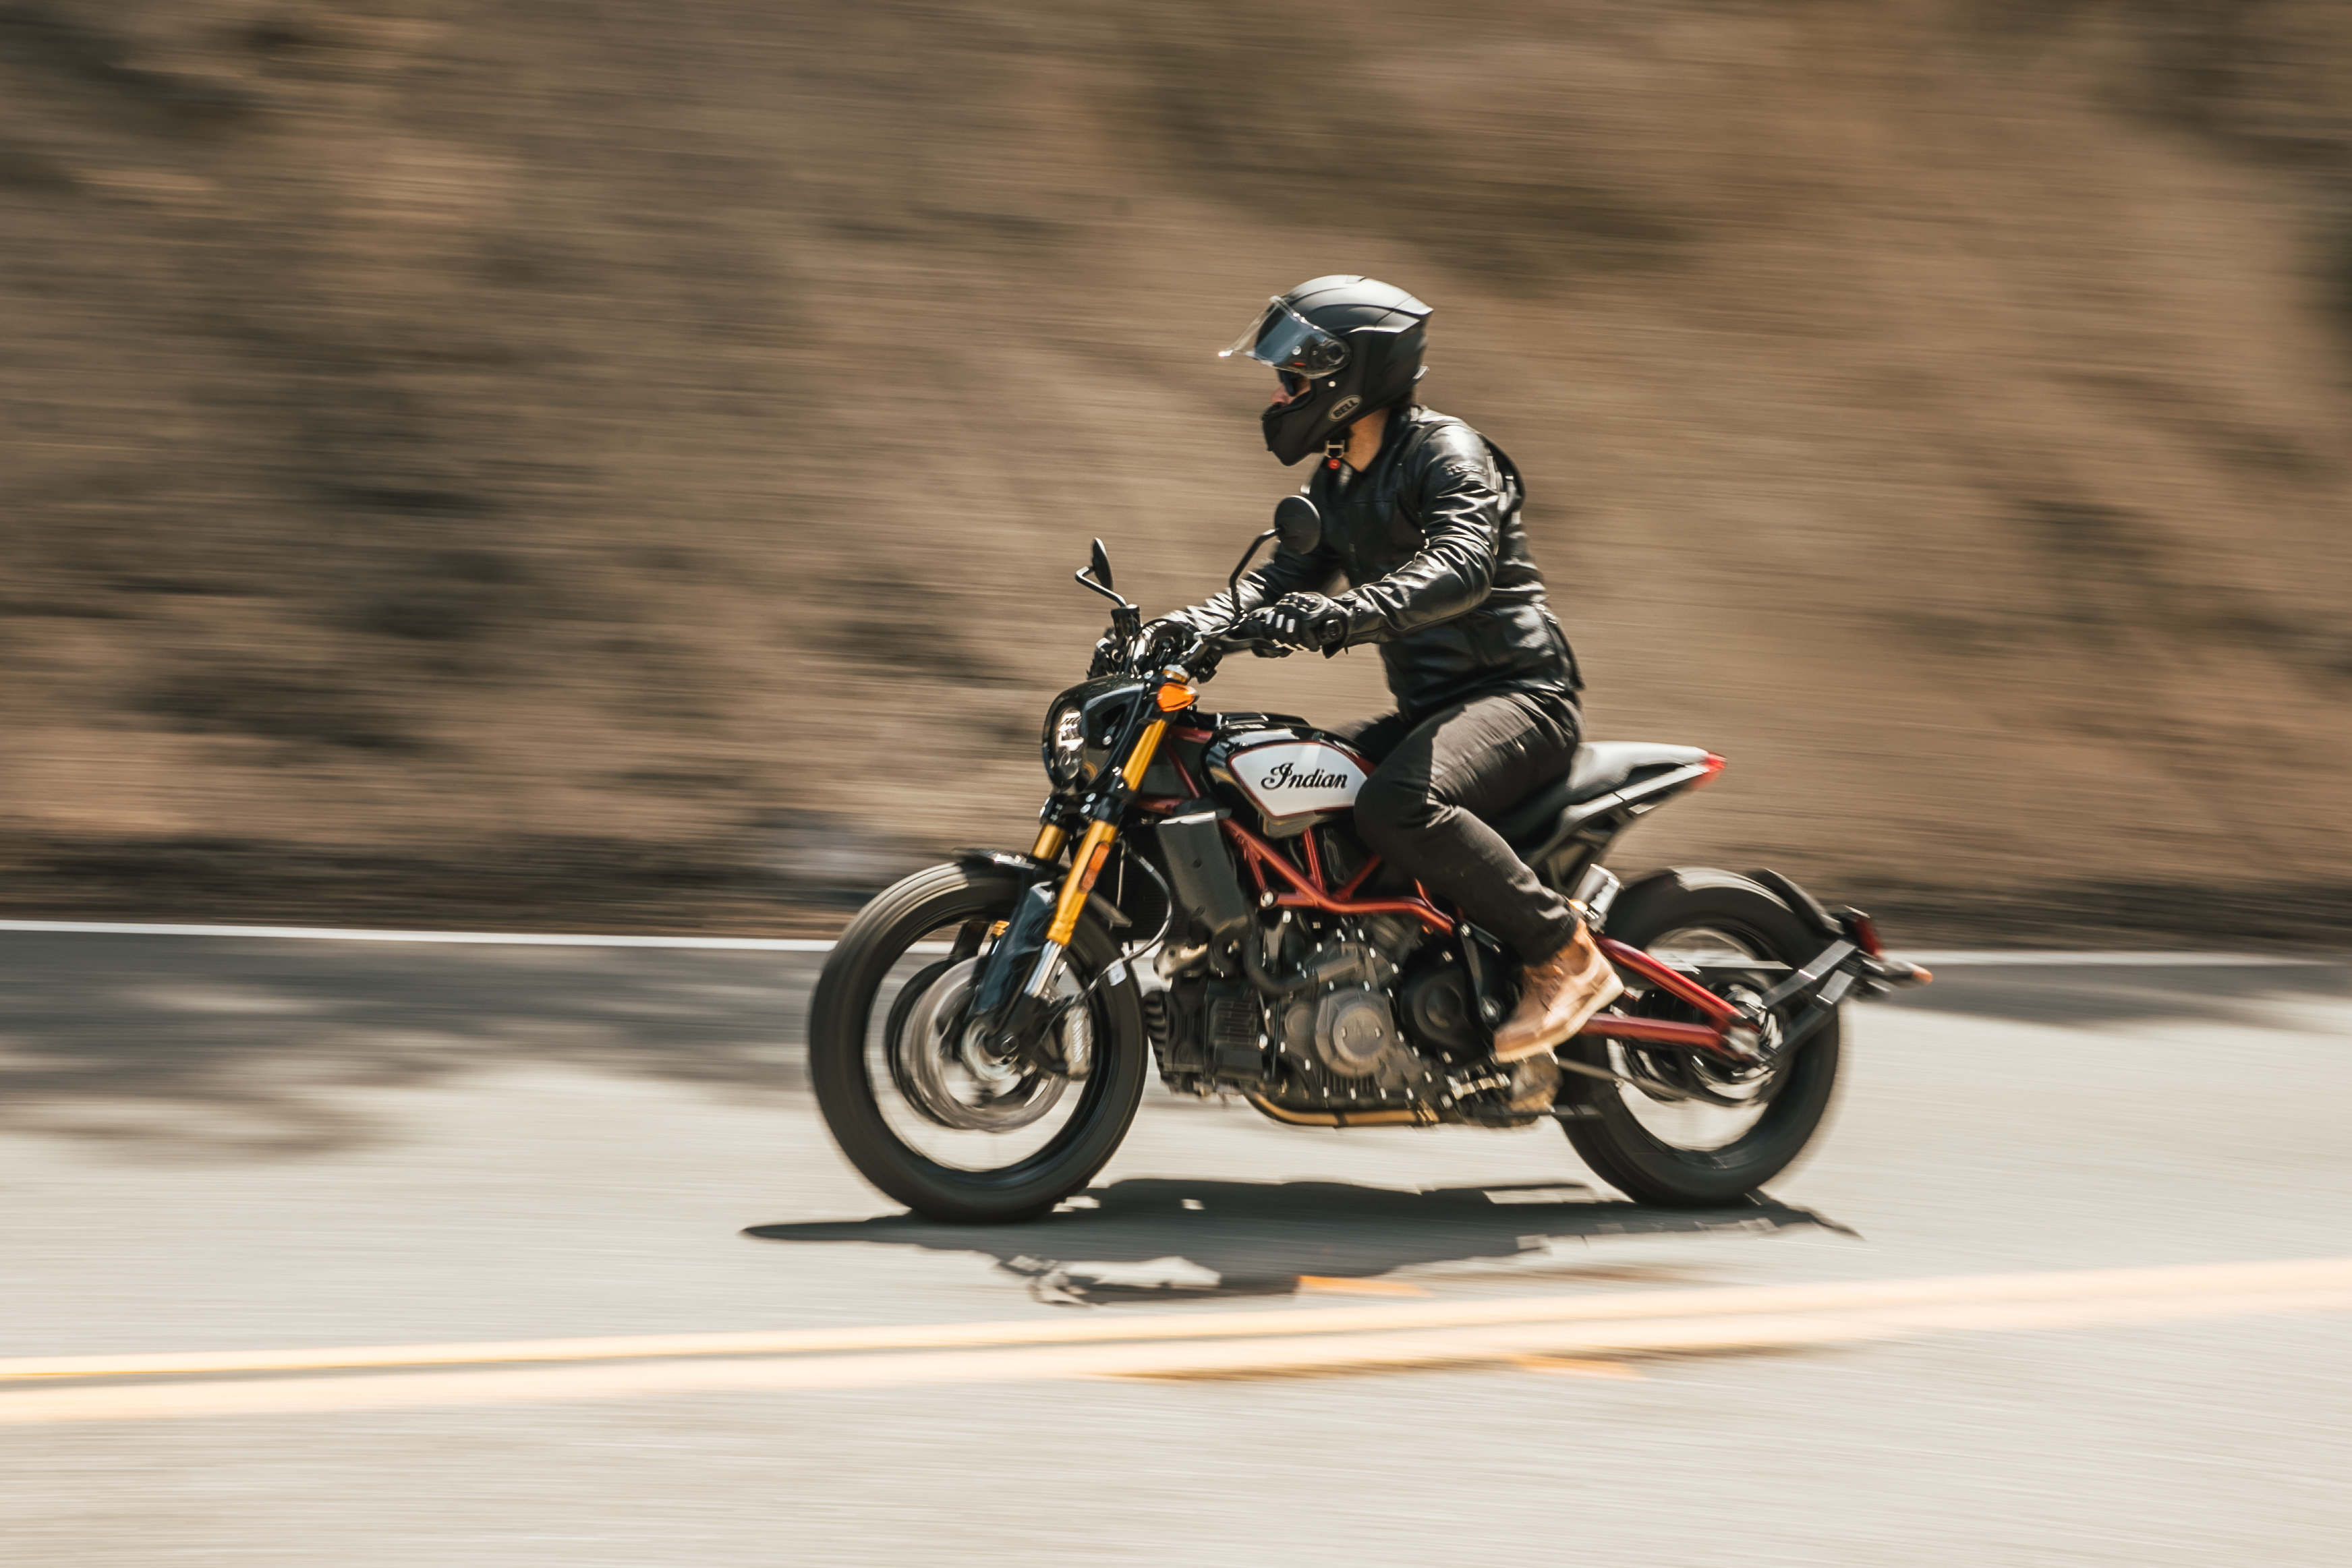 2019 Indian FTR 1200 S review - RevZilla